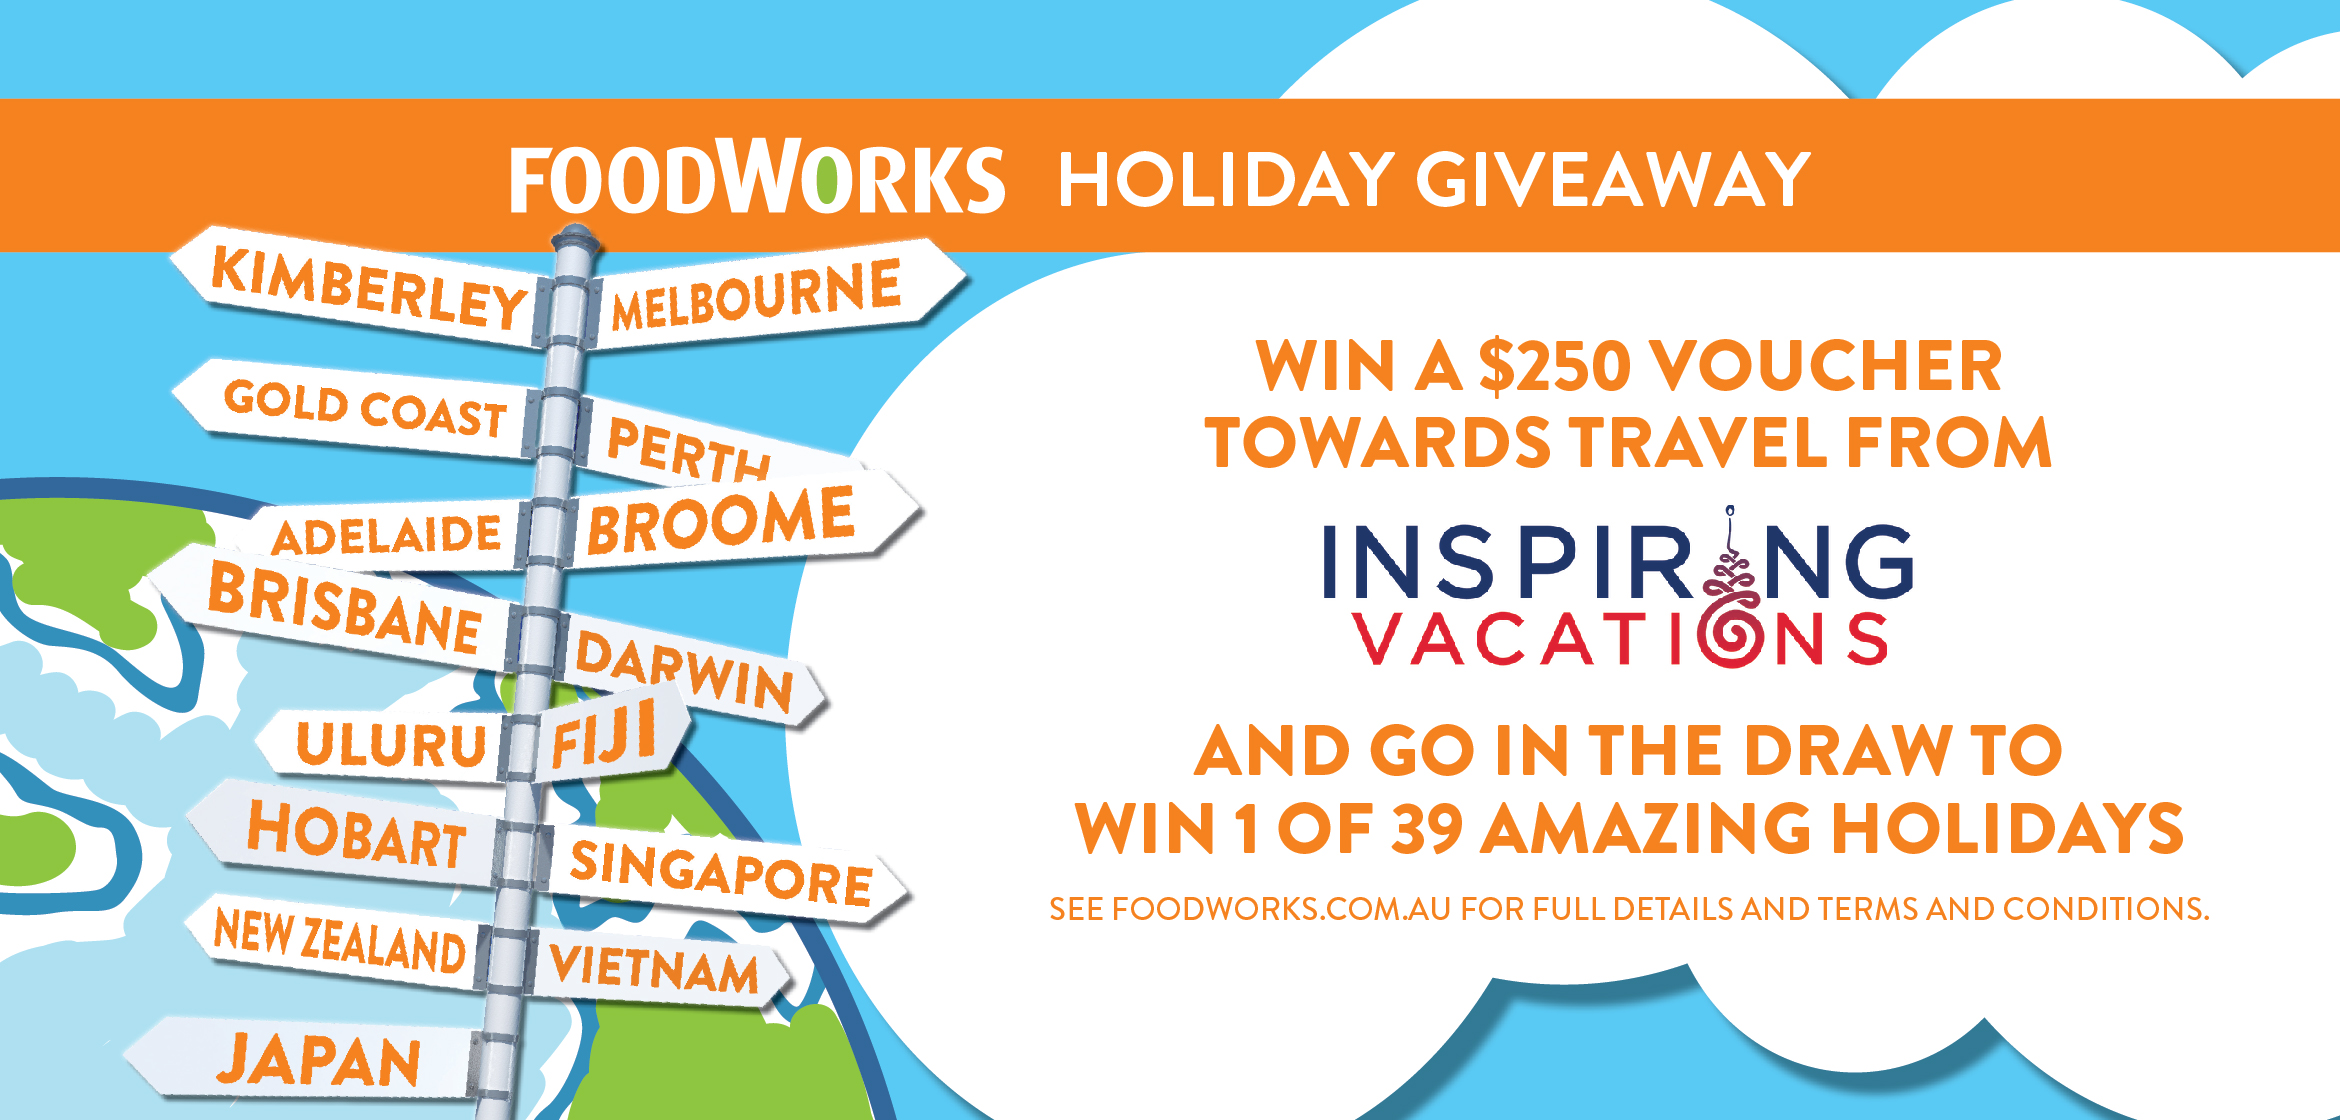 FOODWORKS HOLIDAY GIVE AWAY